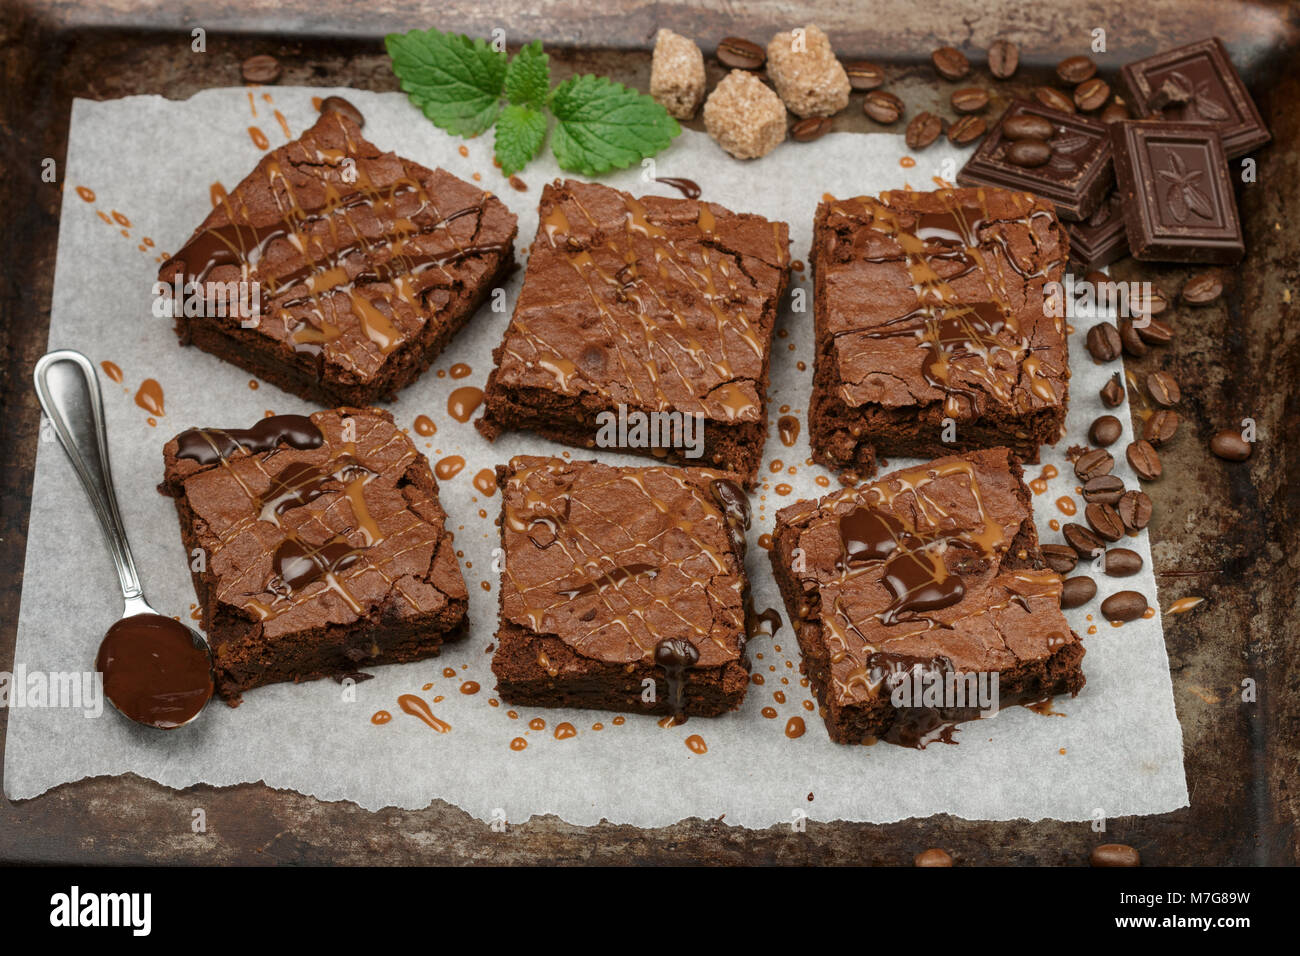 Delicious homemade brownie with chocolate sauce and caramel on the baking sheet. Top view - Stock Image